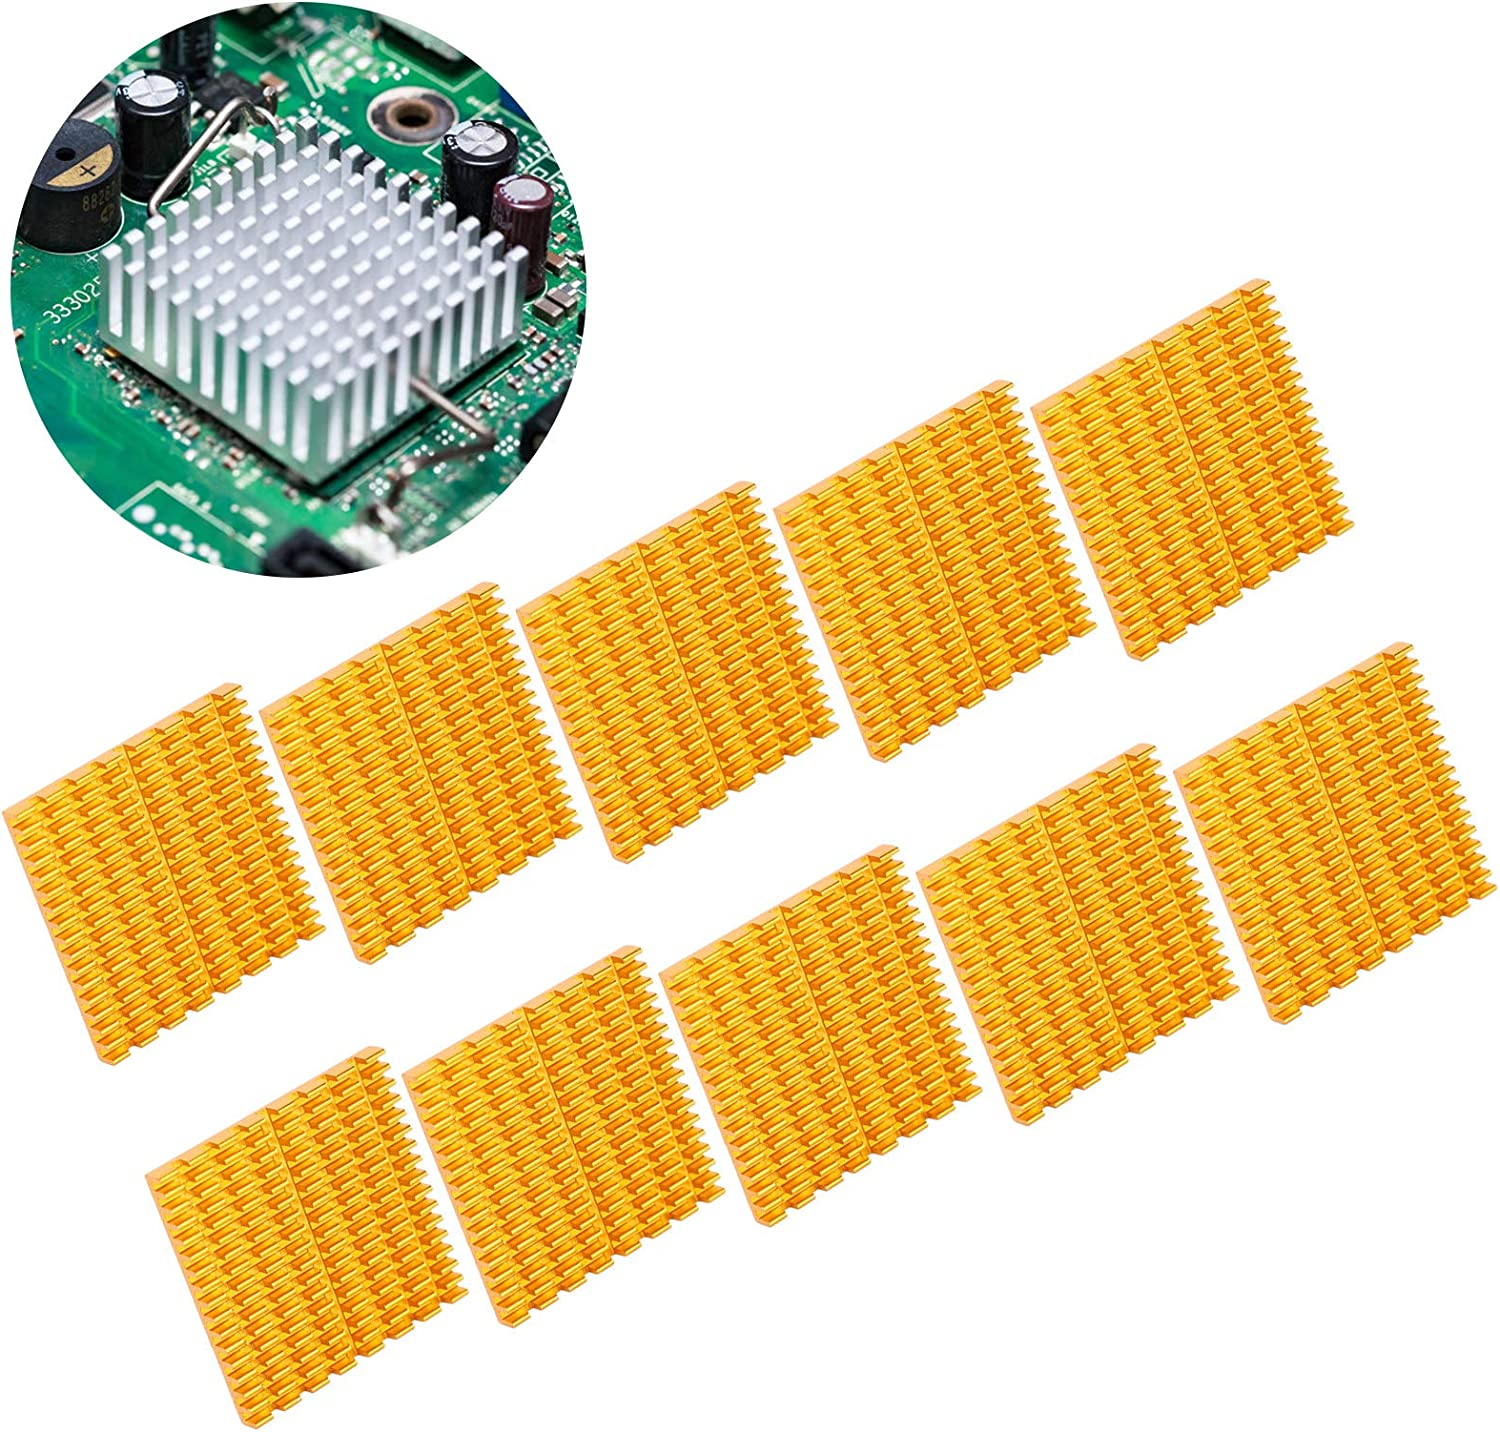 Golden Transistors Radiator Aluminum Cooling Fin Modules for Routers CPUs PUSOKEI 20pcs 37x4x37mm Heat Sink Amplifiers Power Supplies Power Boards